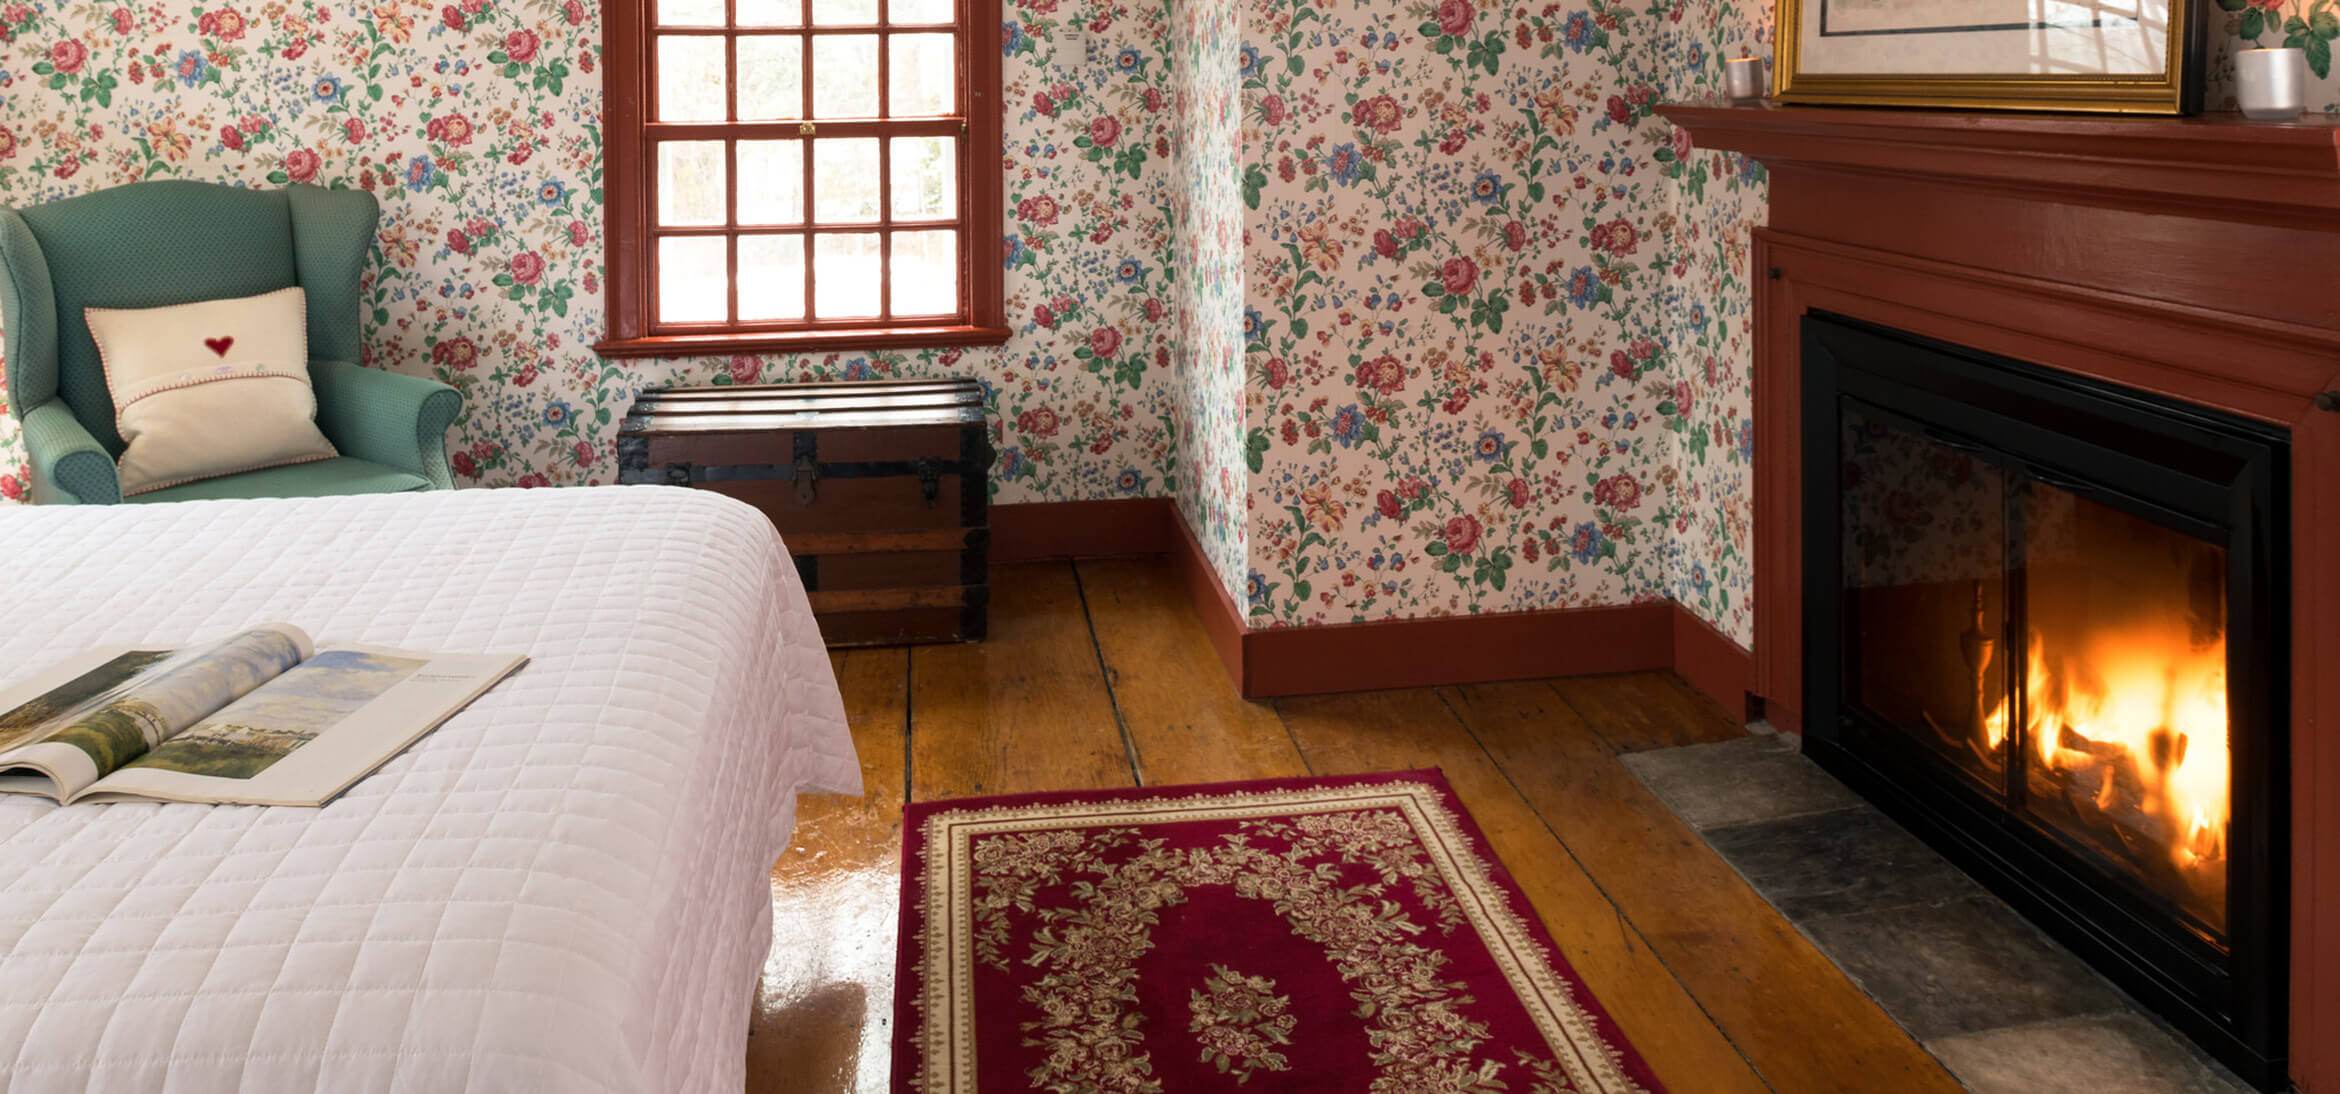 Kingsbury Room fireplace at our romantic Kennebunkport B&B